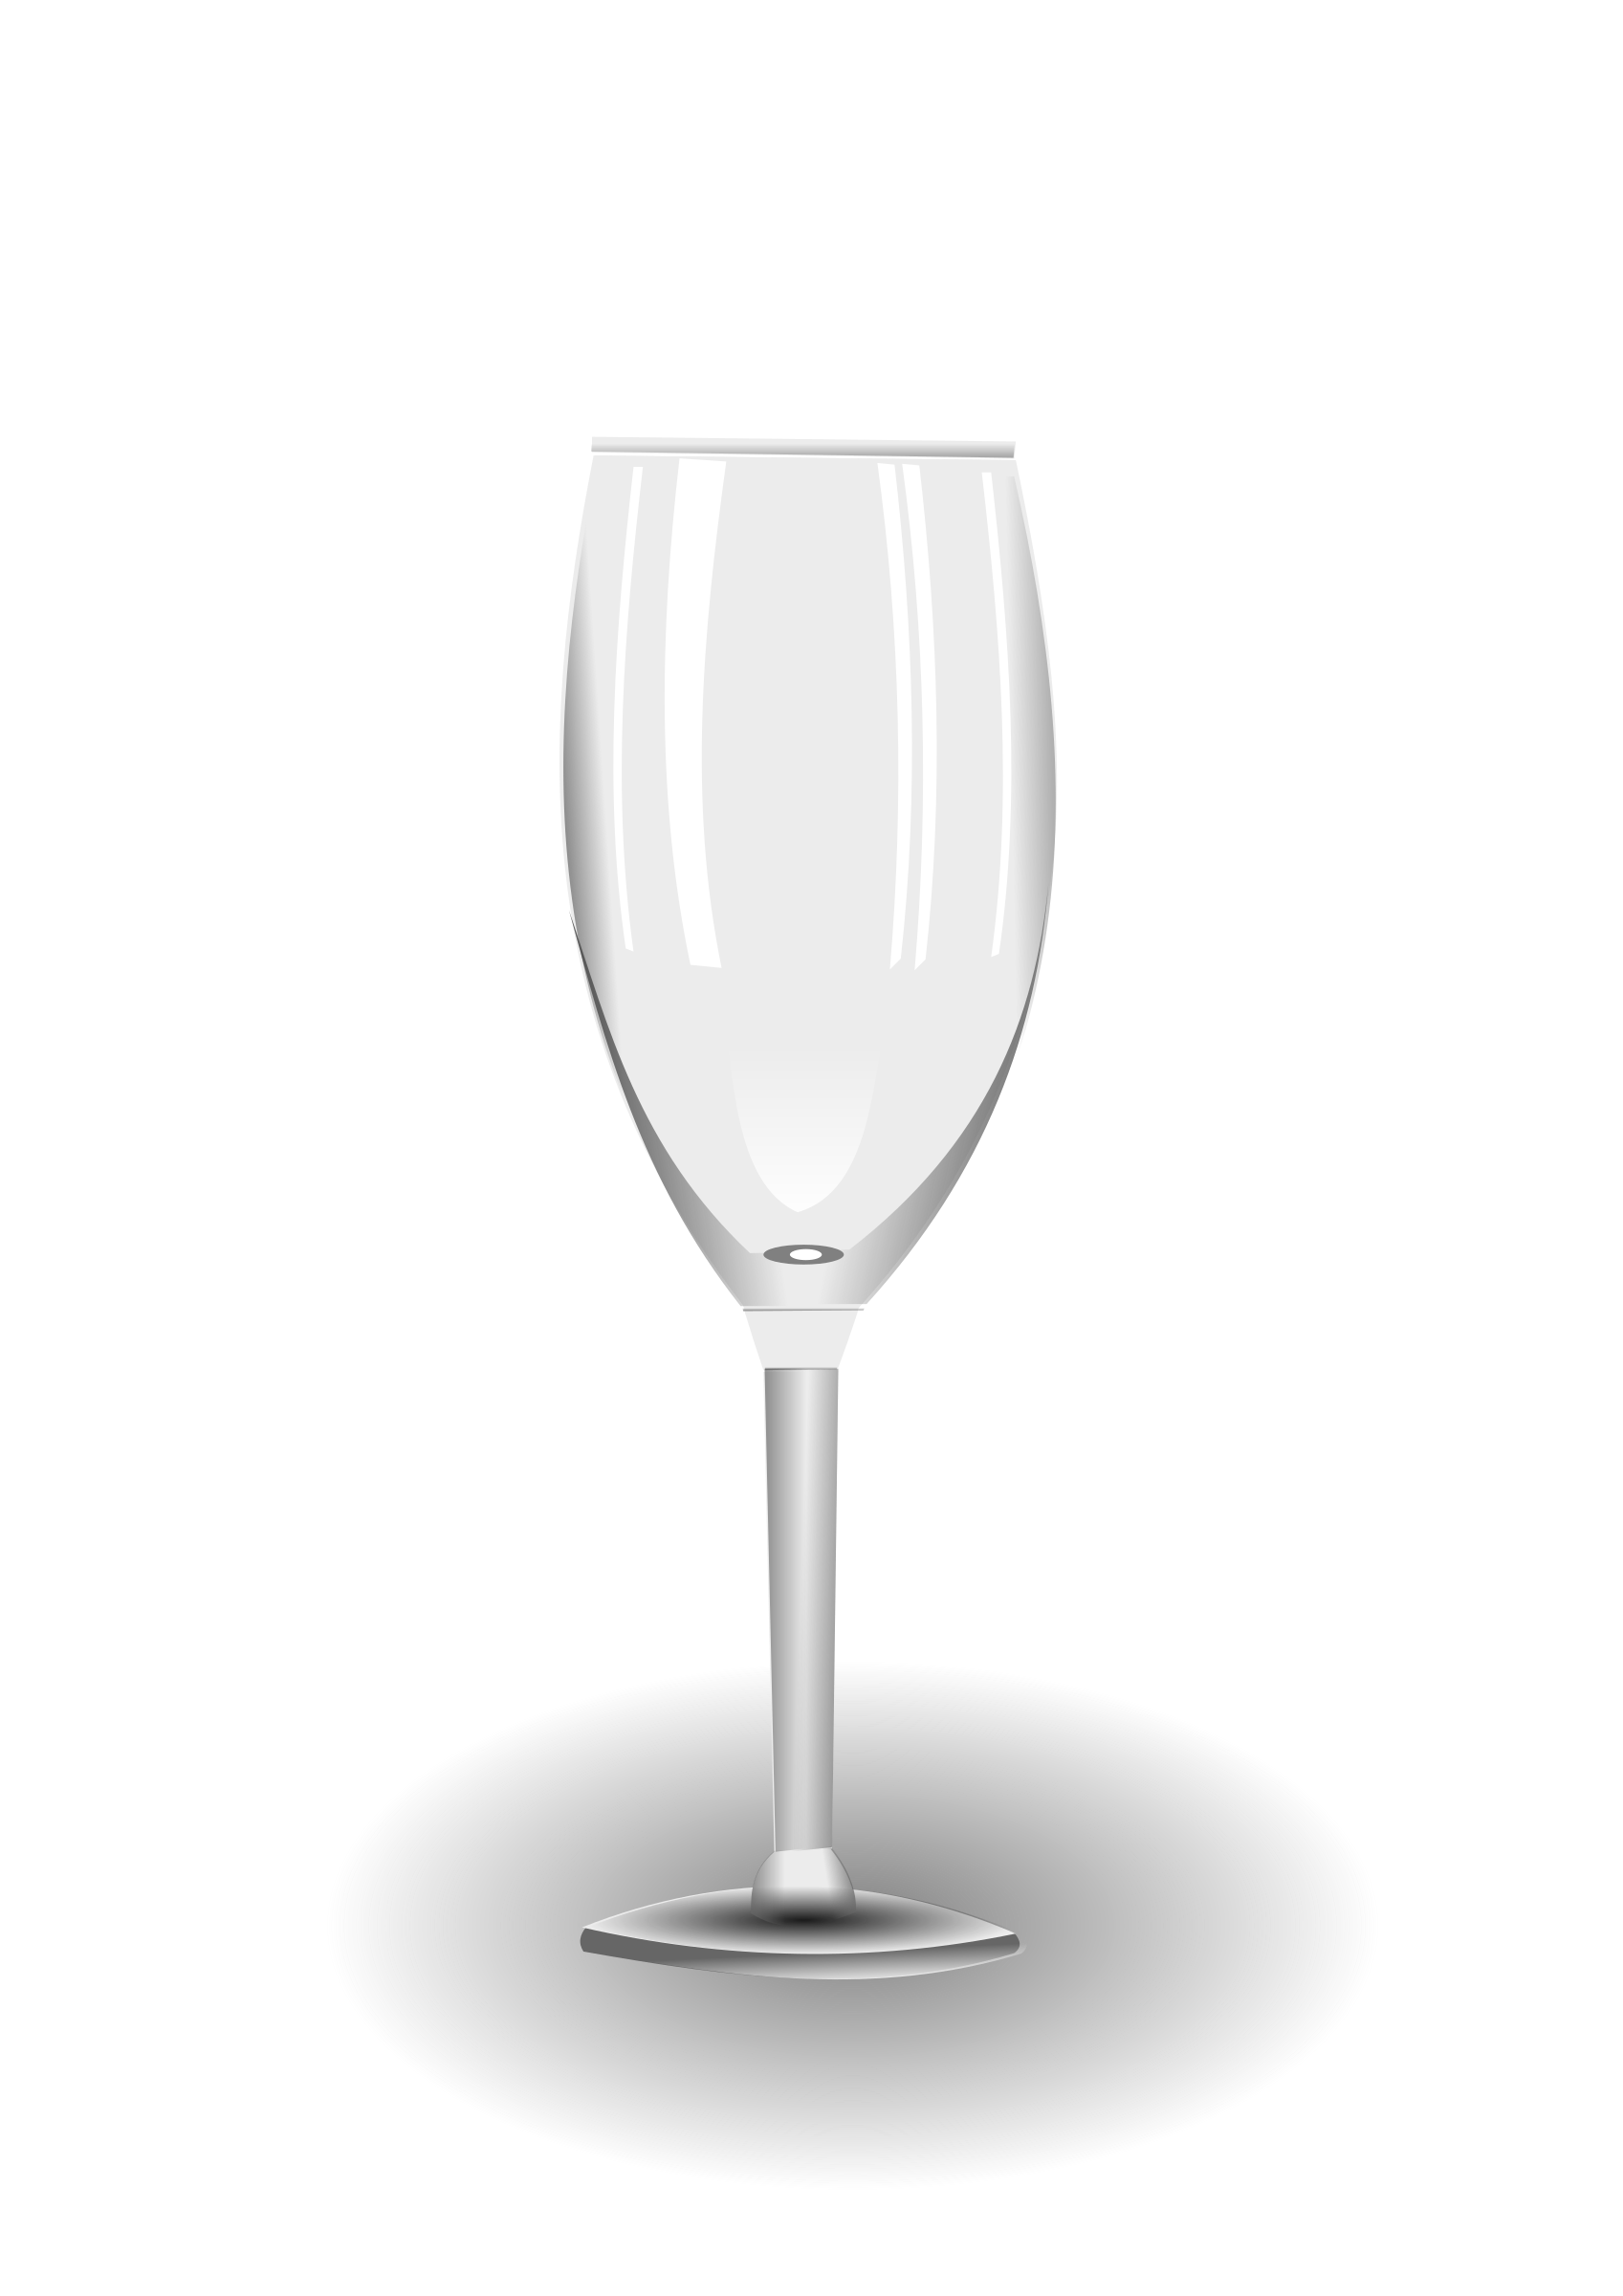 Transparent wine glass png. Free cliparts download clip